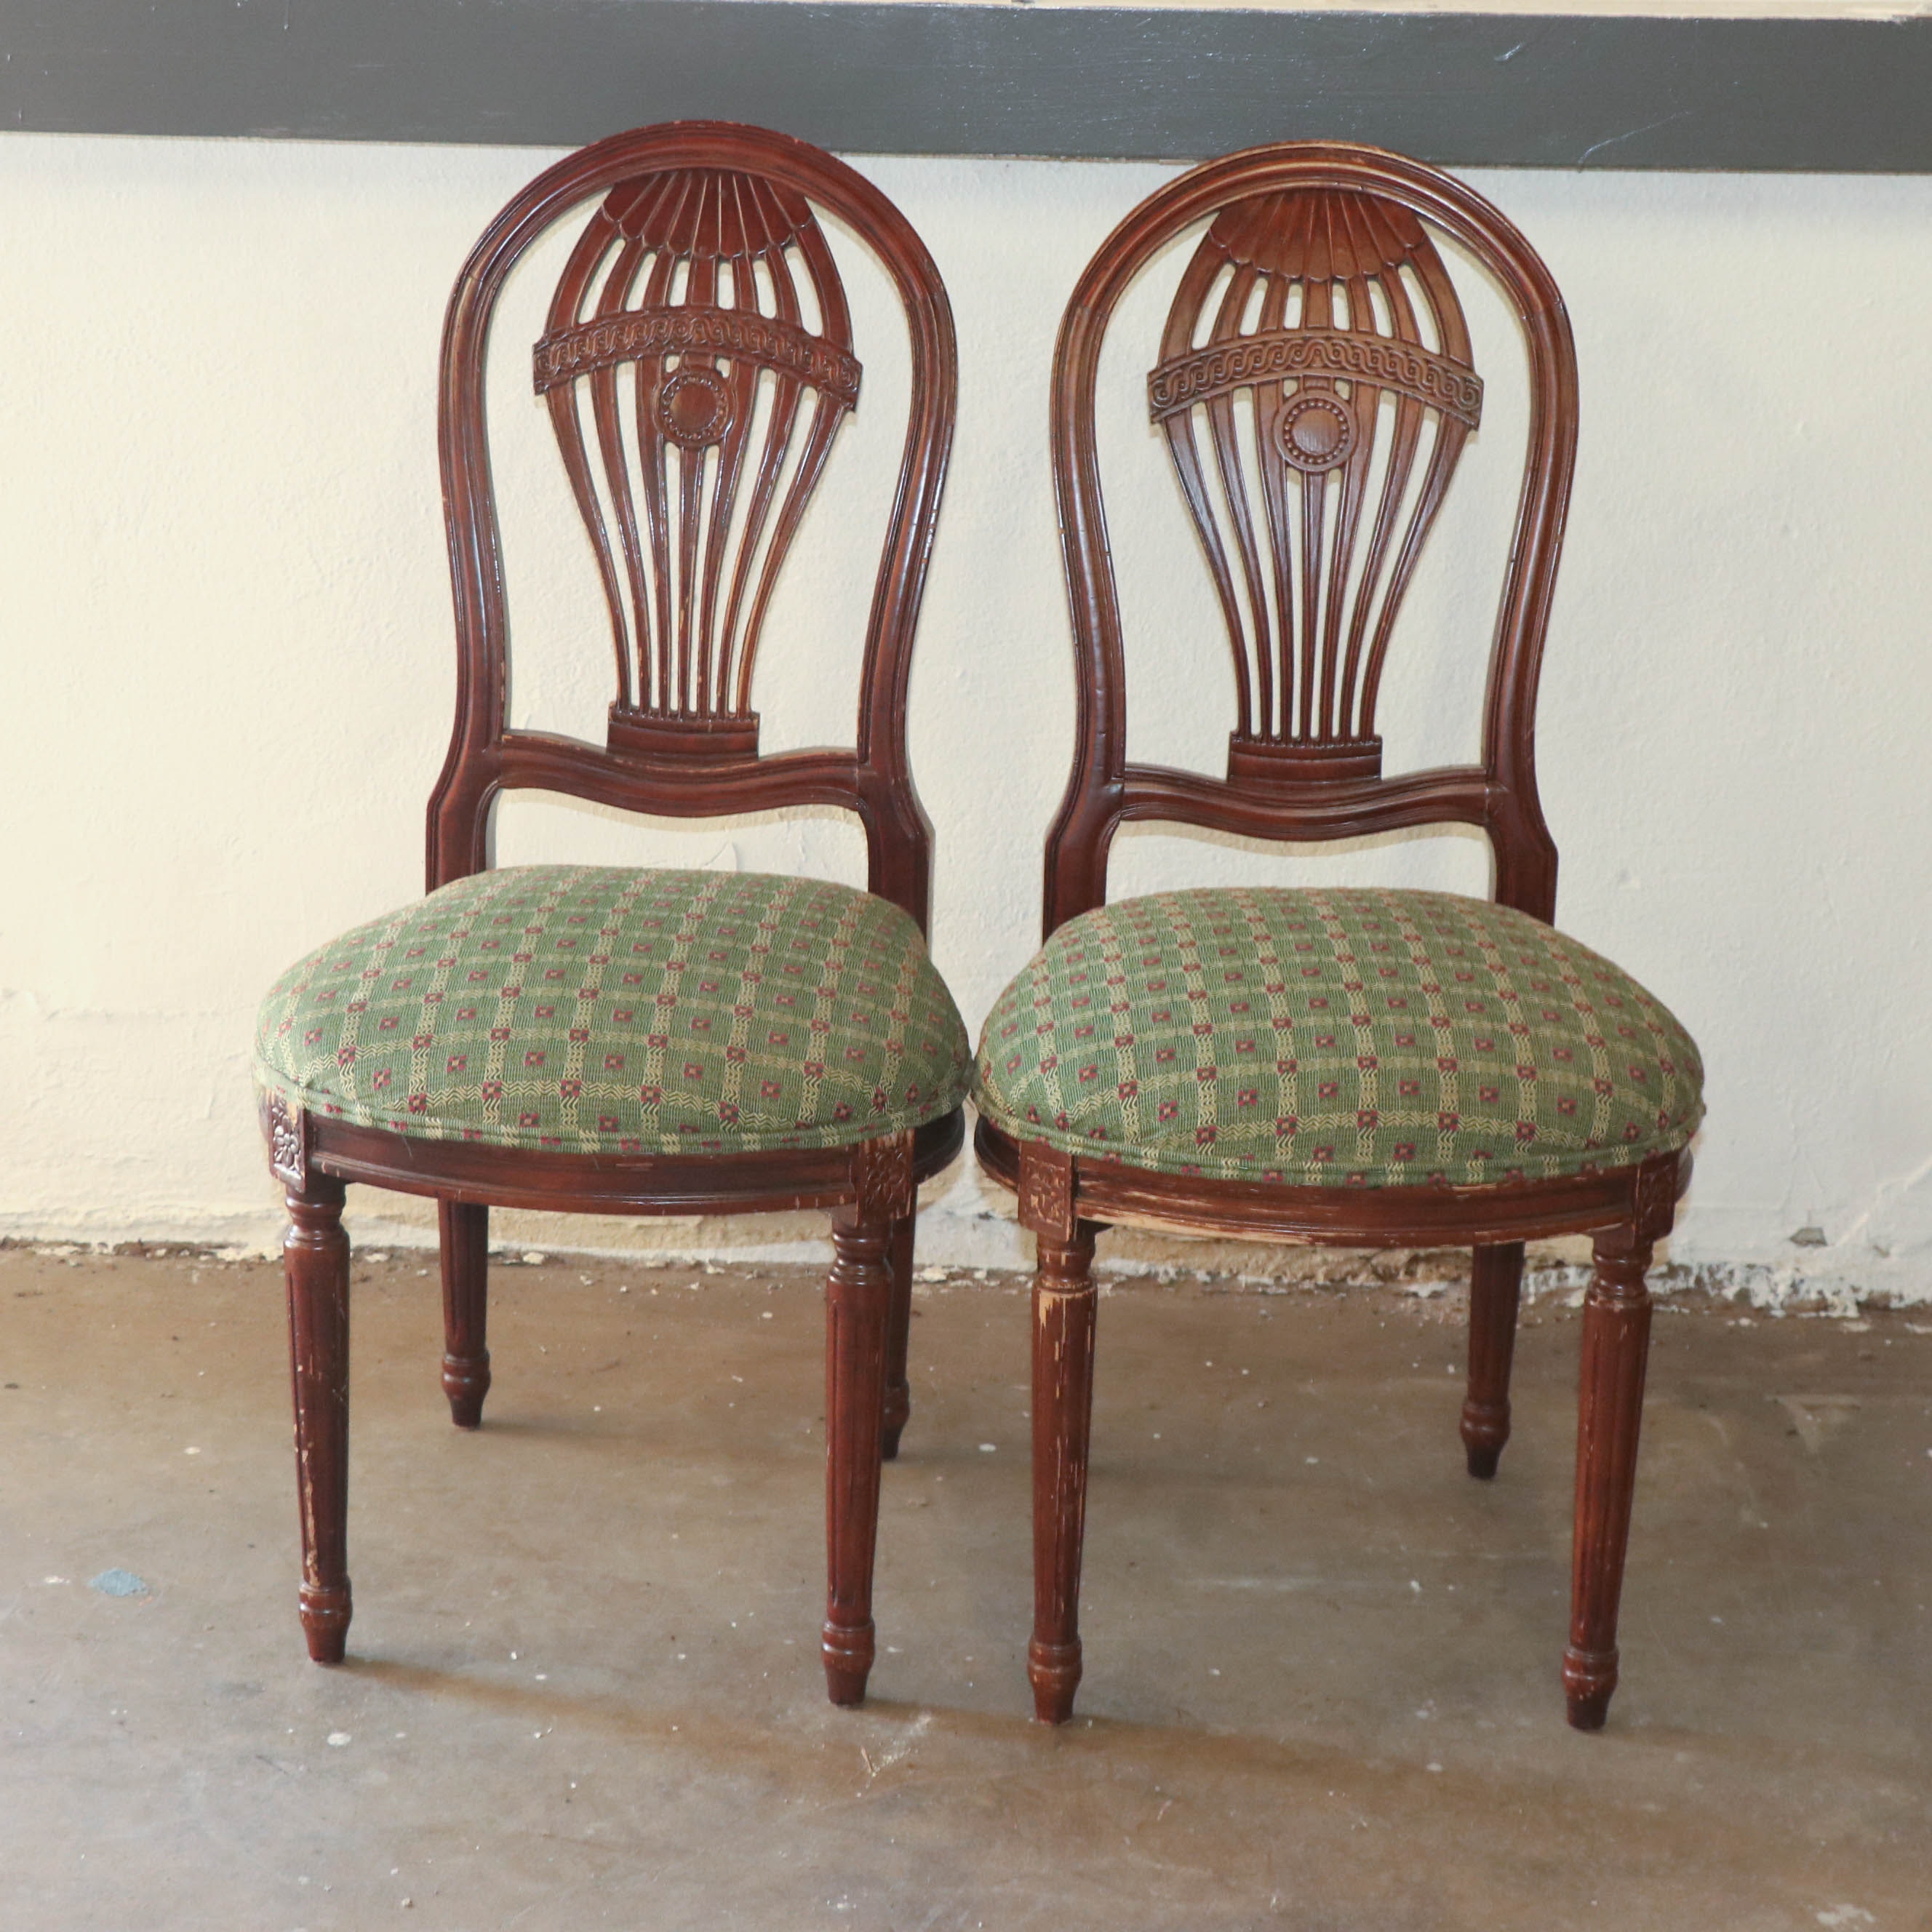 Pair of George III Style Mahogany Finish Side Chairs, 20th Century